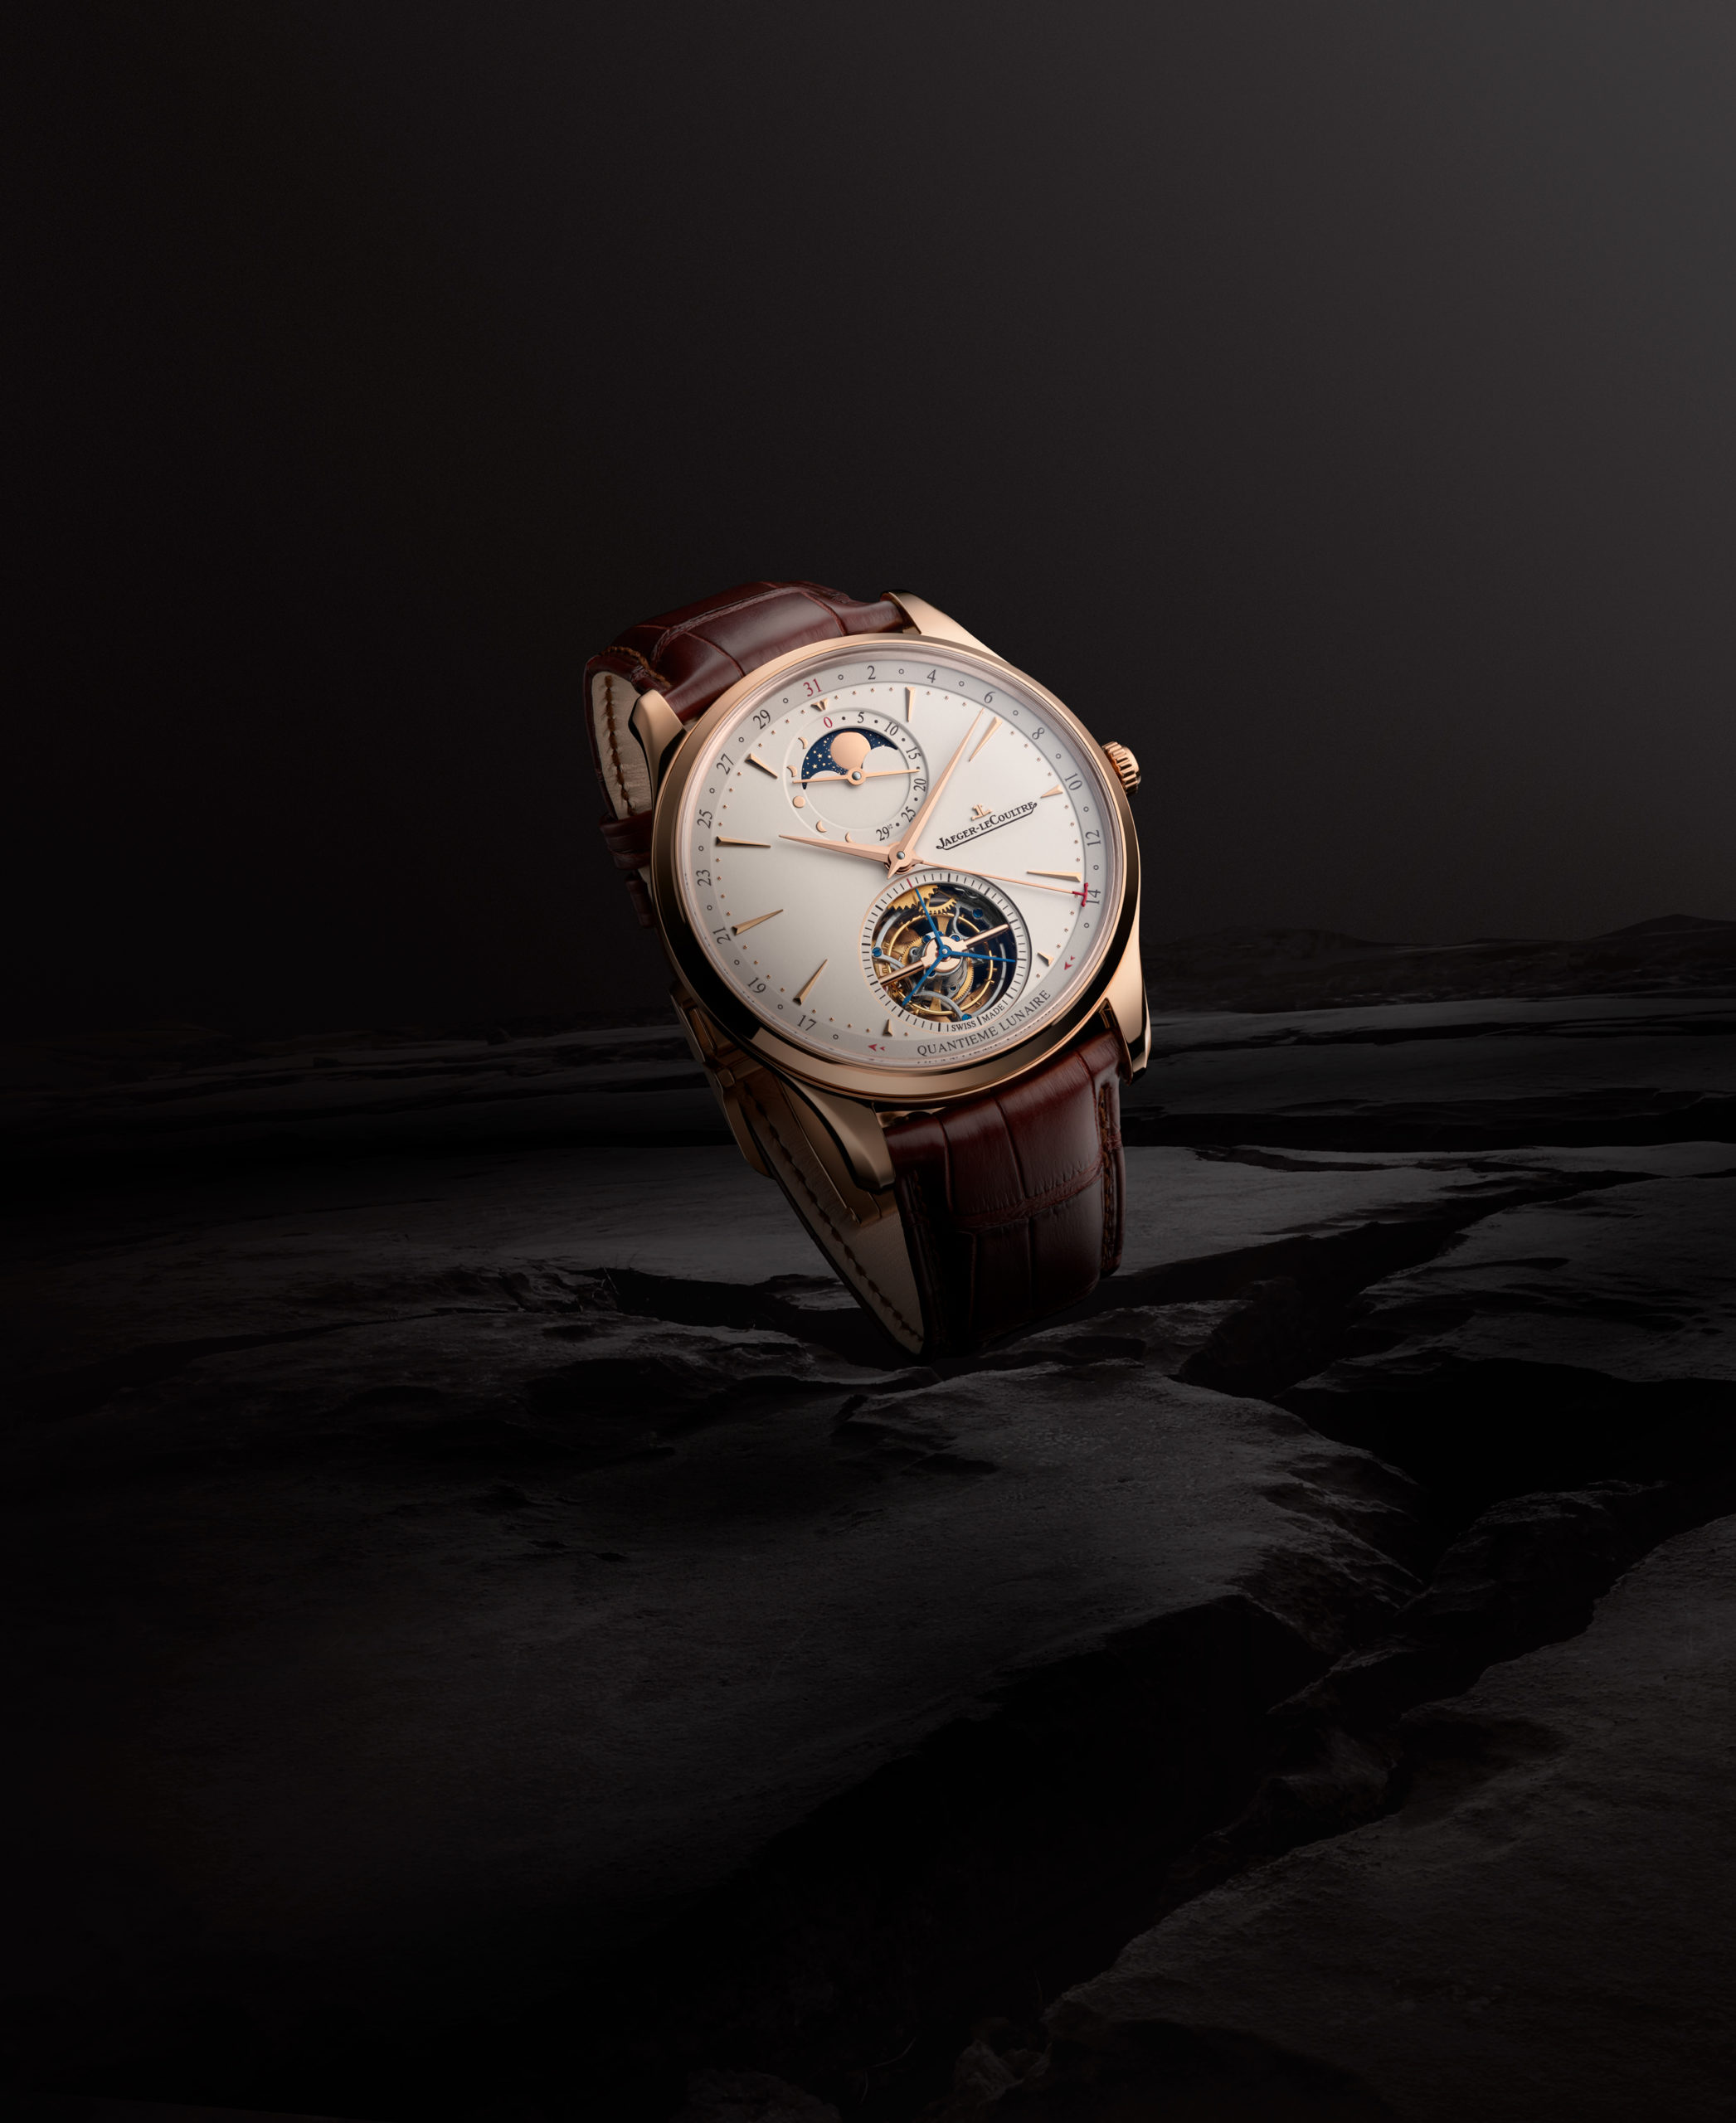 jlc-master-ut-tourbillonmoon2-scaled.jpg